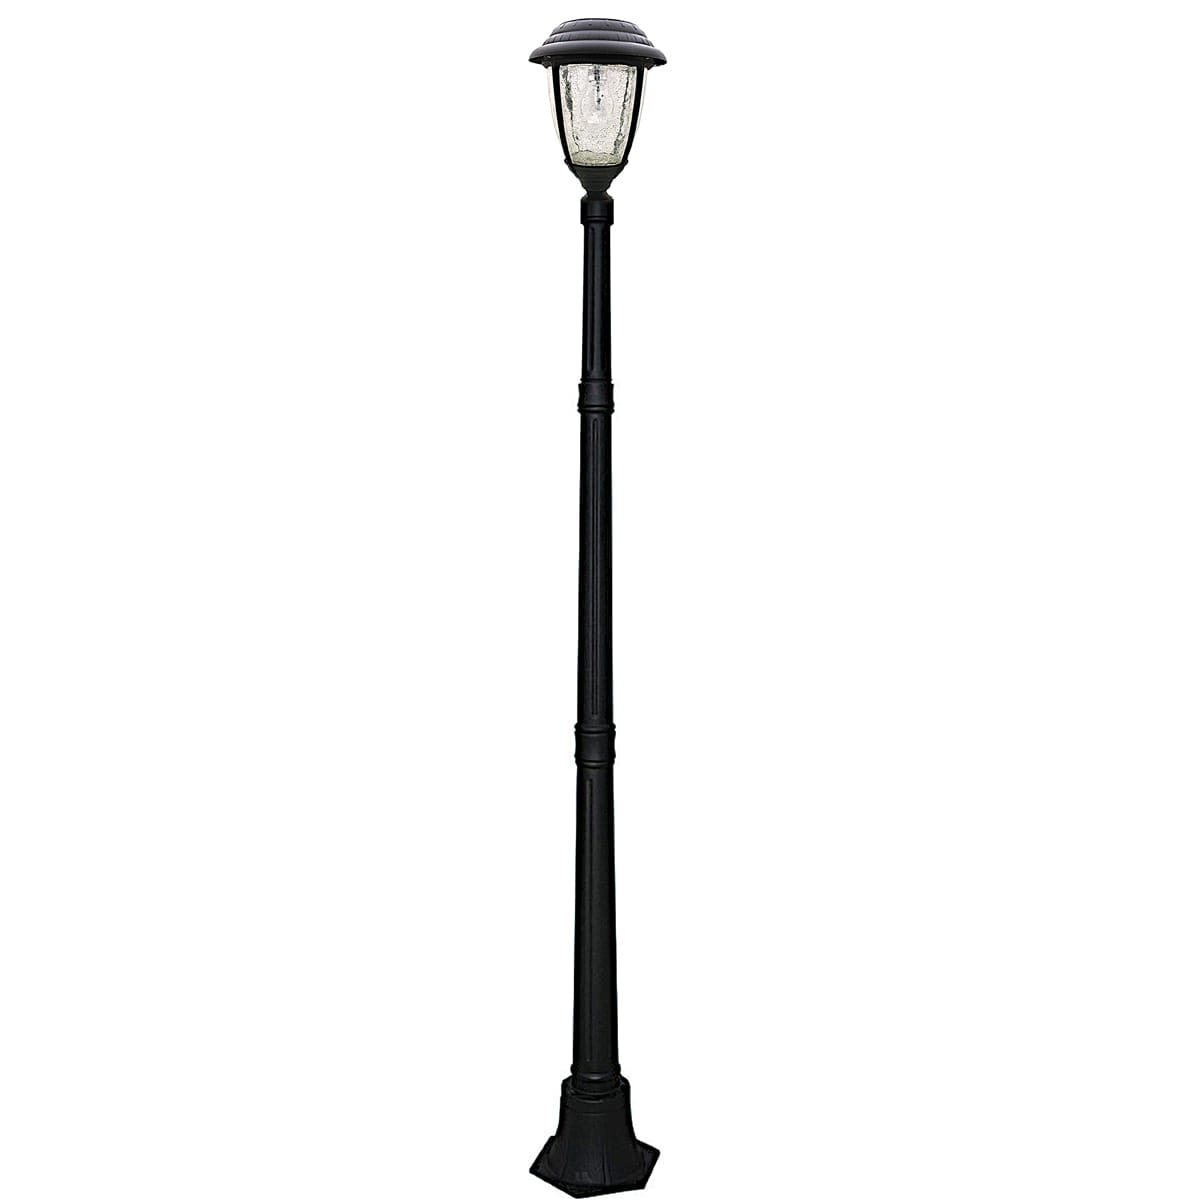 Candela Solar Lamp Post By Gama Sonic